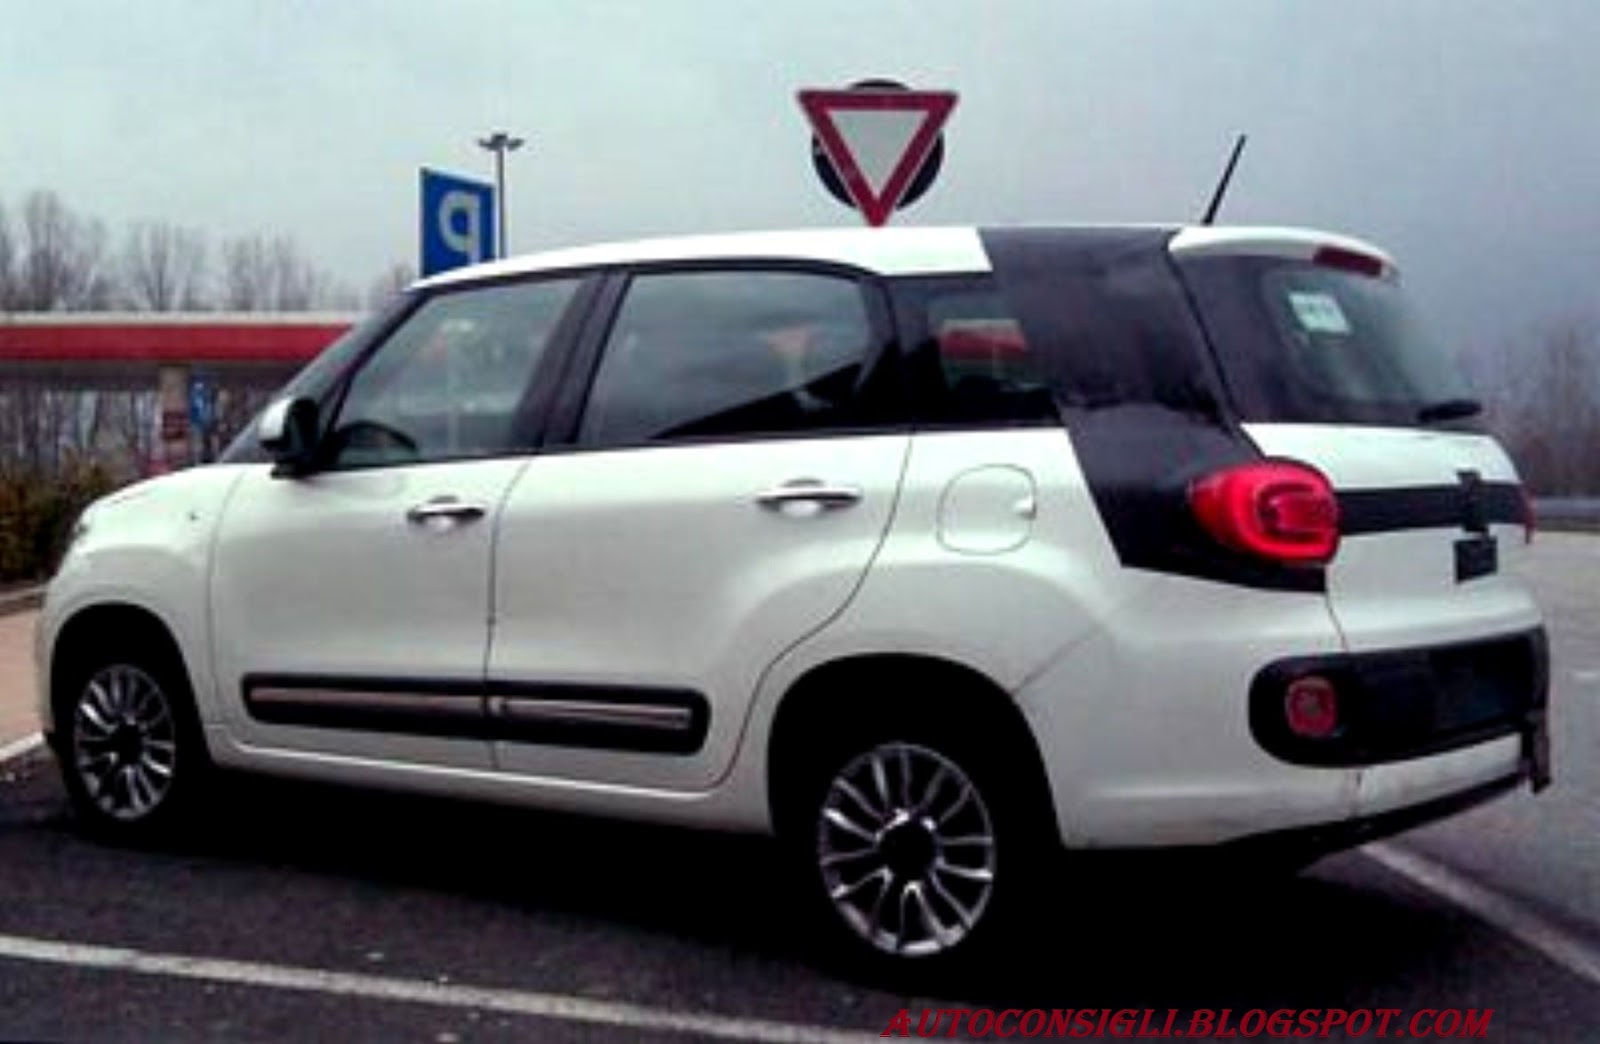 fiat 500 xl 2013 fiat 500xl 15725363 free image hosting at turboimagehost. Black Bedroom Furniture Sets. Home Design Ideas